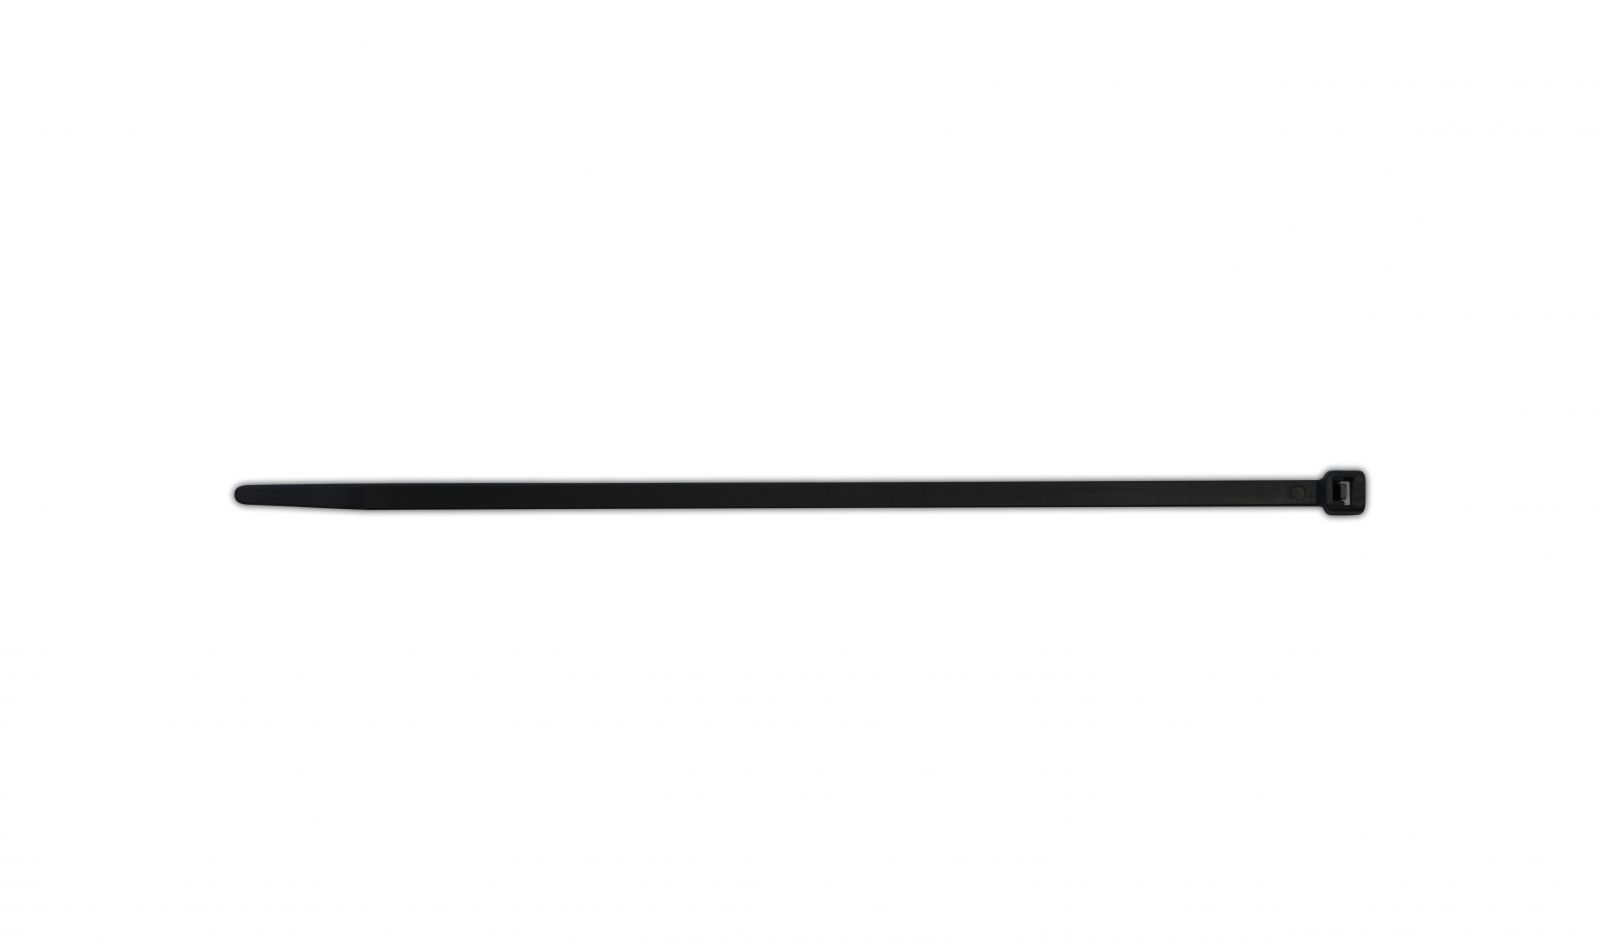 Plastic Cable Ties - 679214HB image